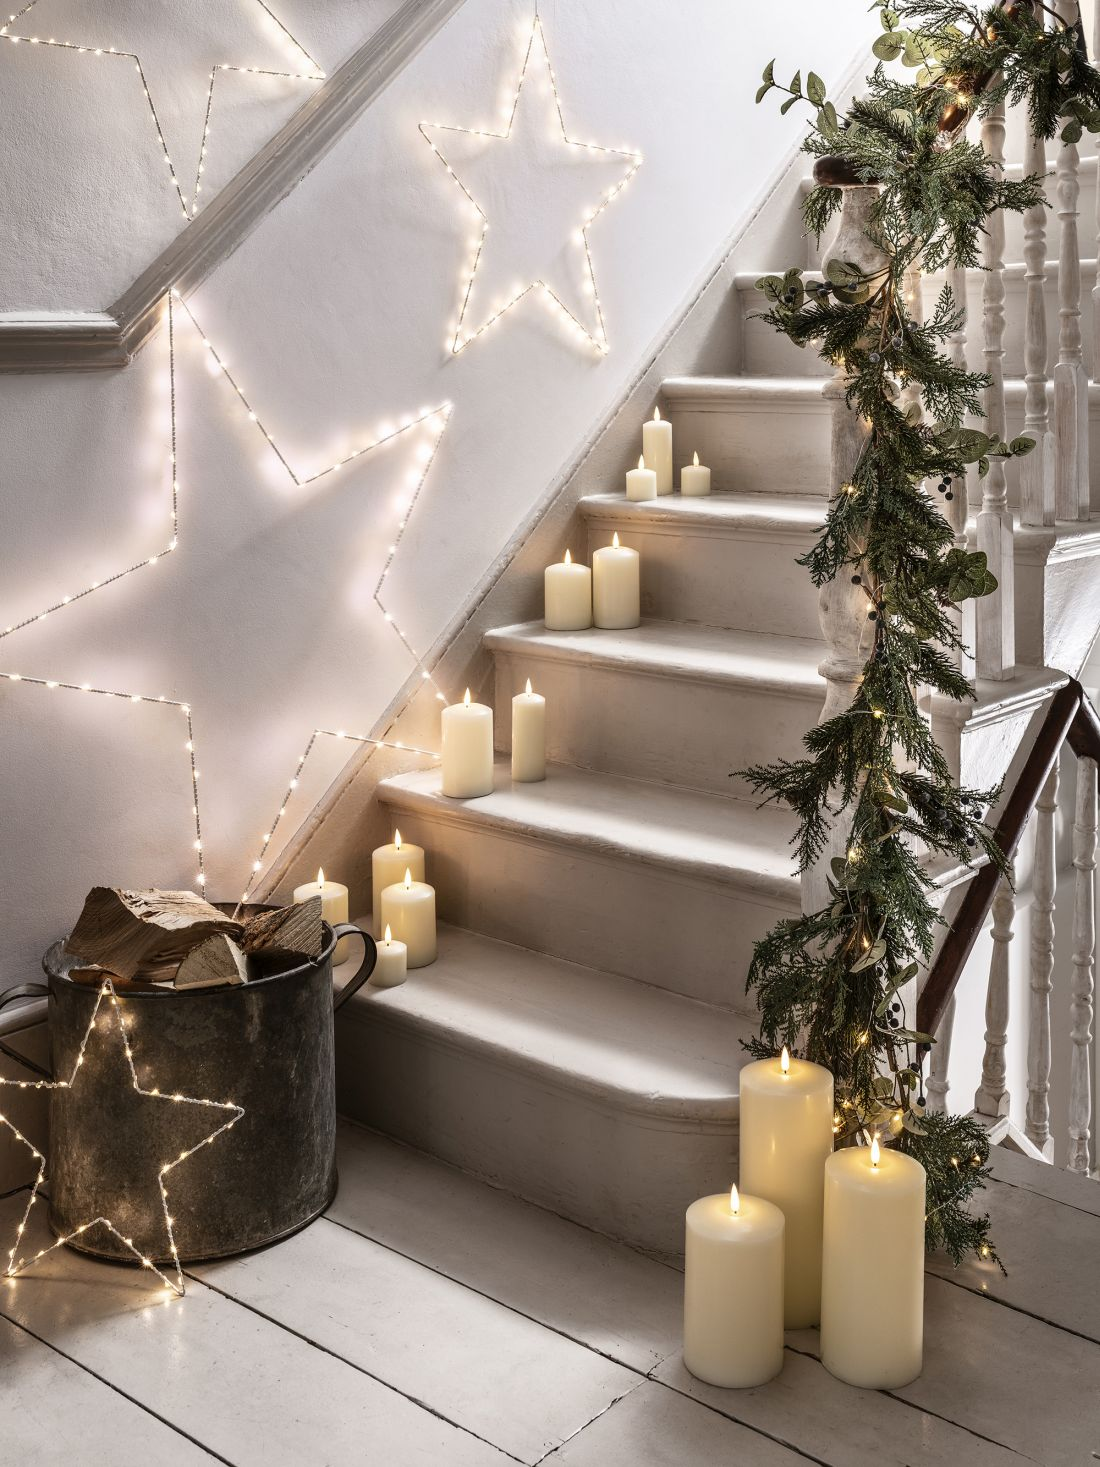 8lights4fun_christmas-interior-candles-amp-stars-white-staircase-lifestyle.jpg